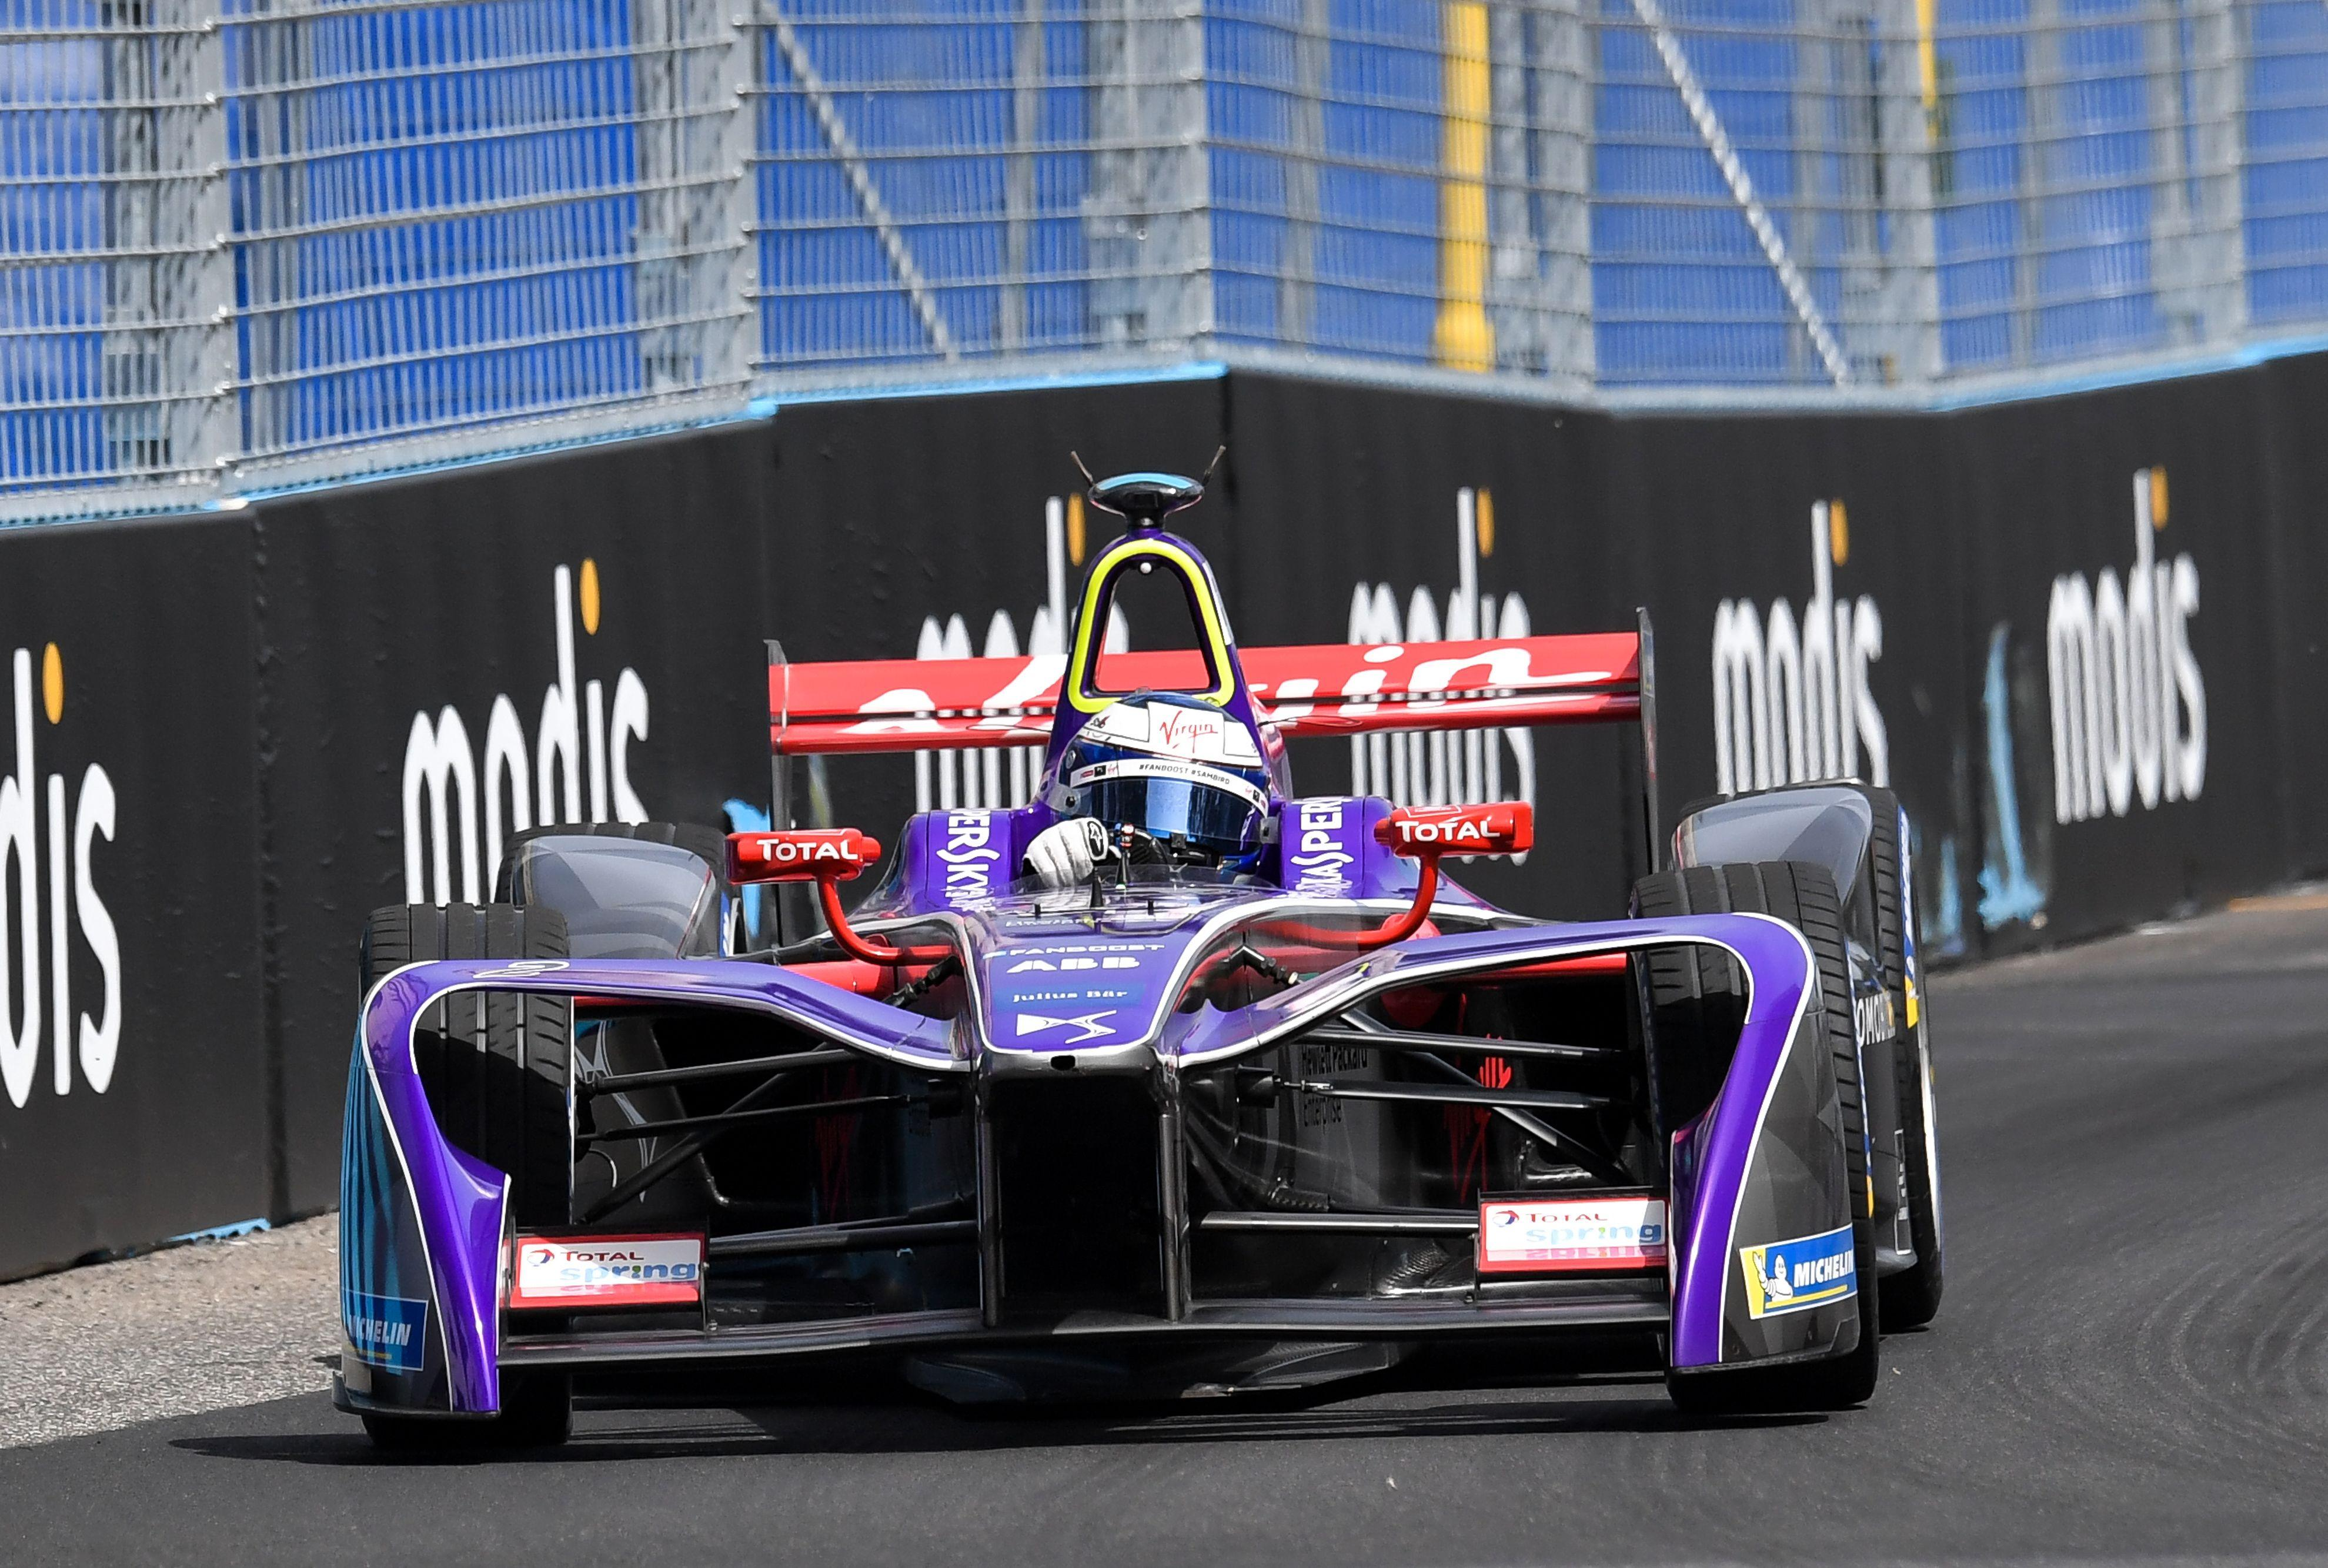 Sam Bird put on a great defensive display to win the Rome E-Prix